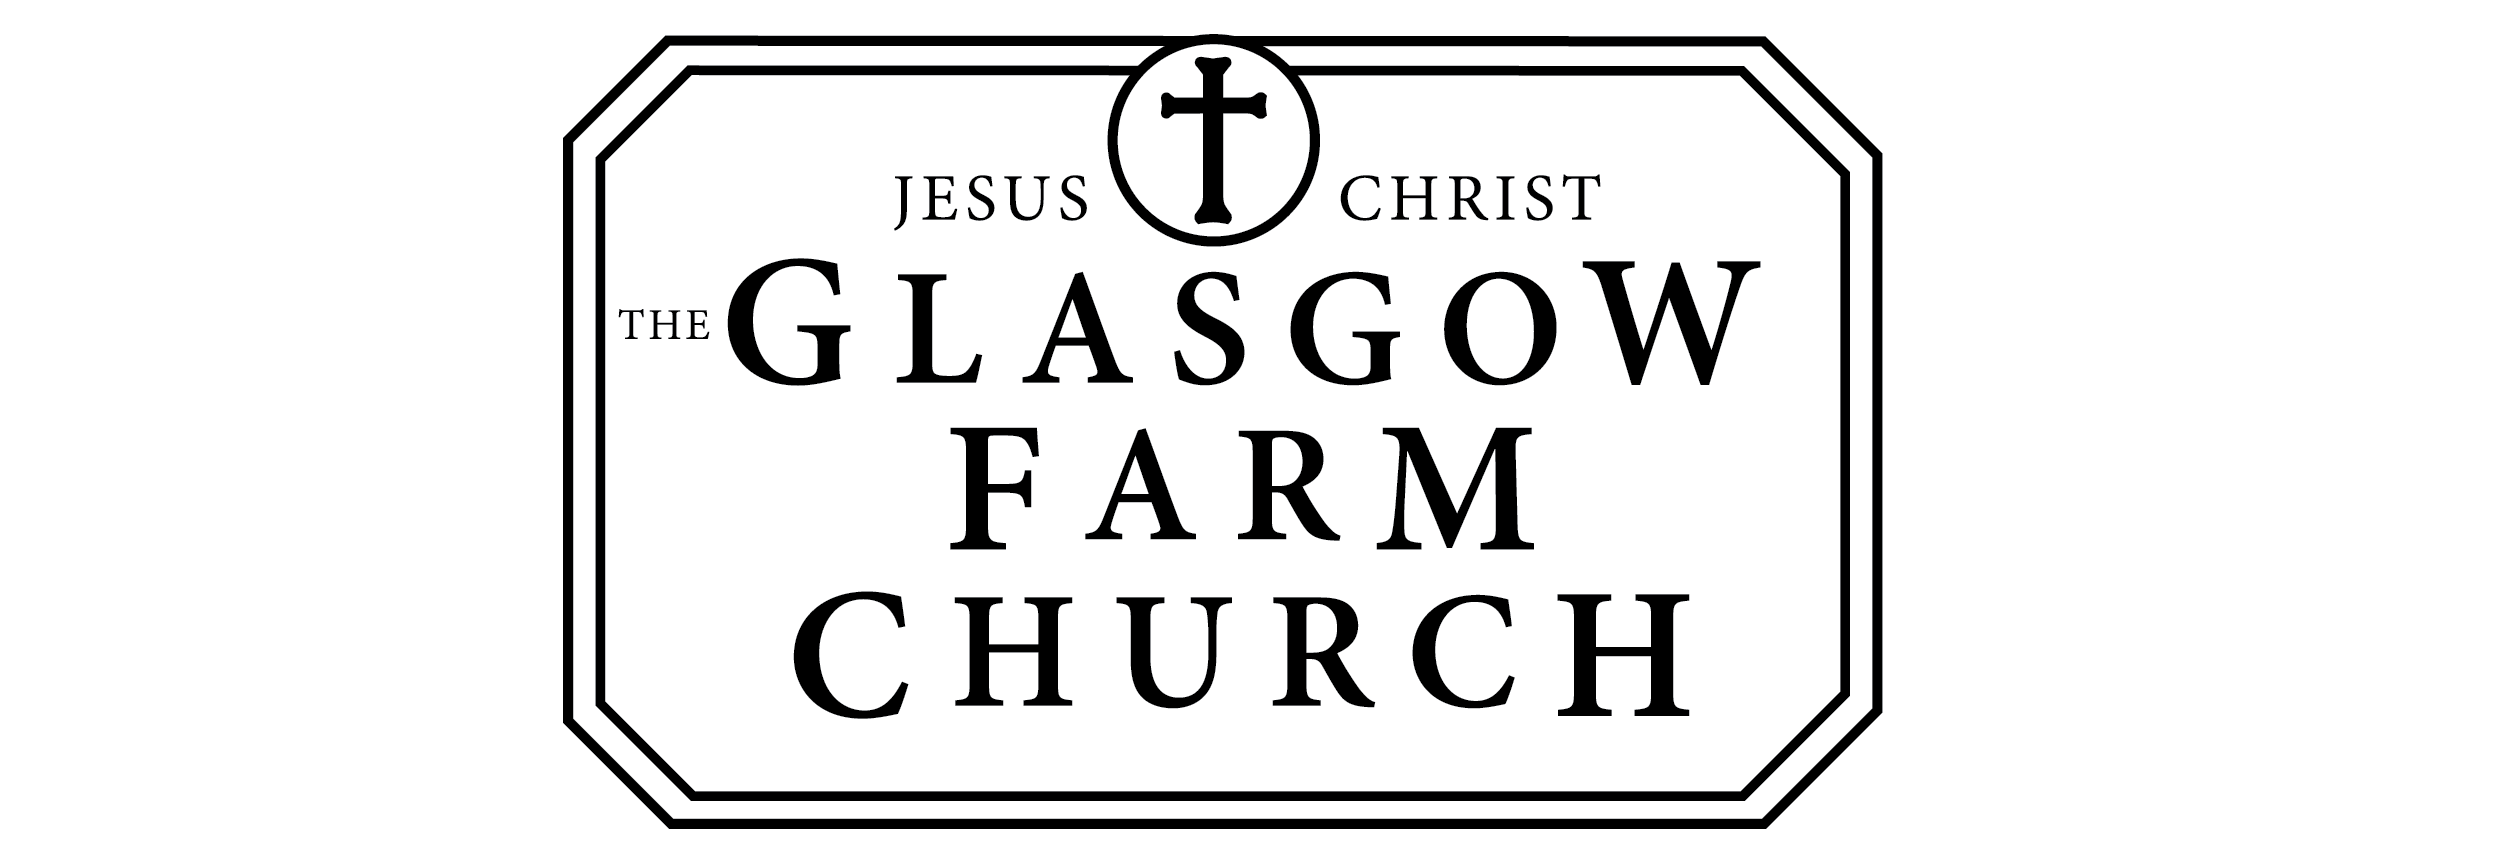 Glasgow Farm Church